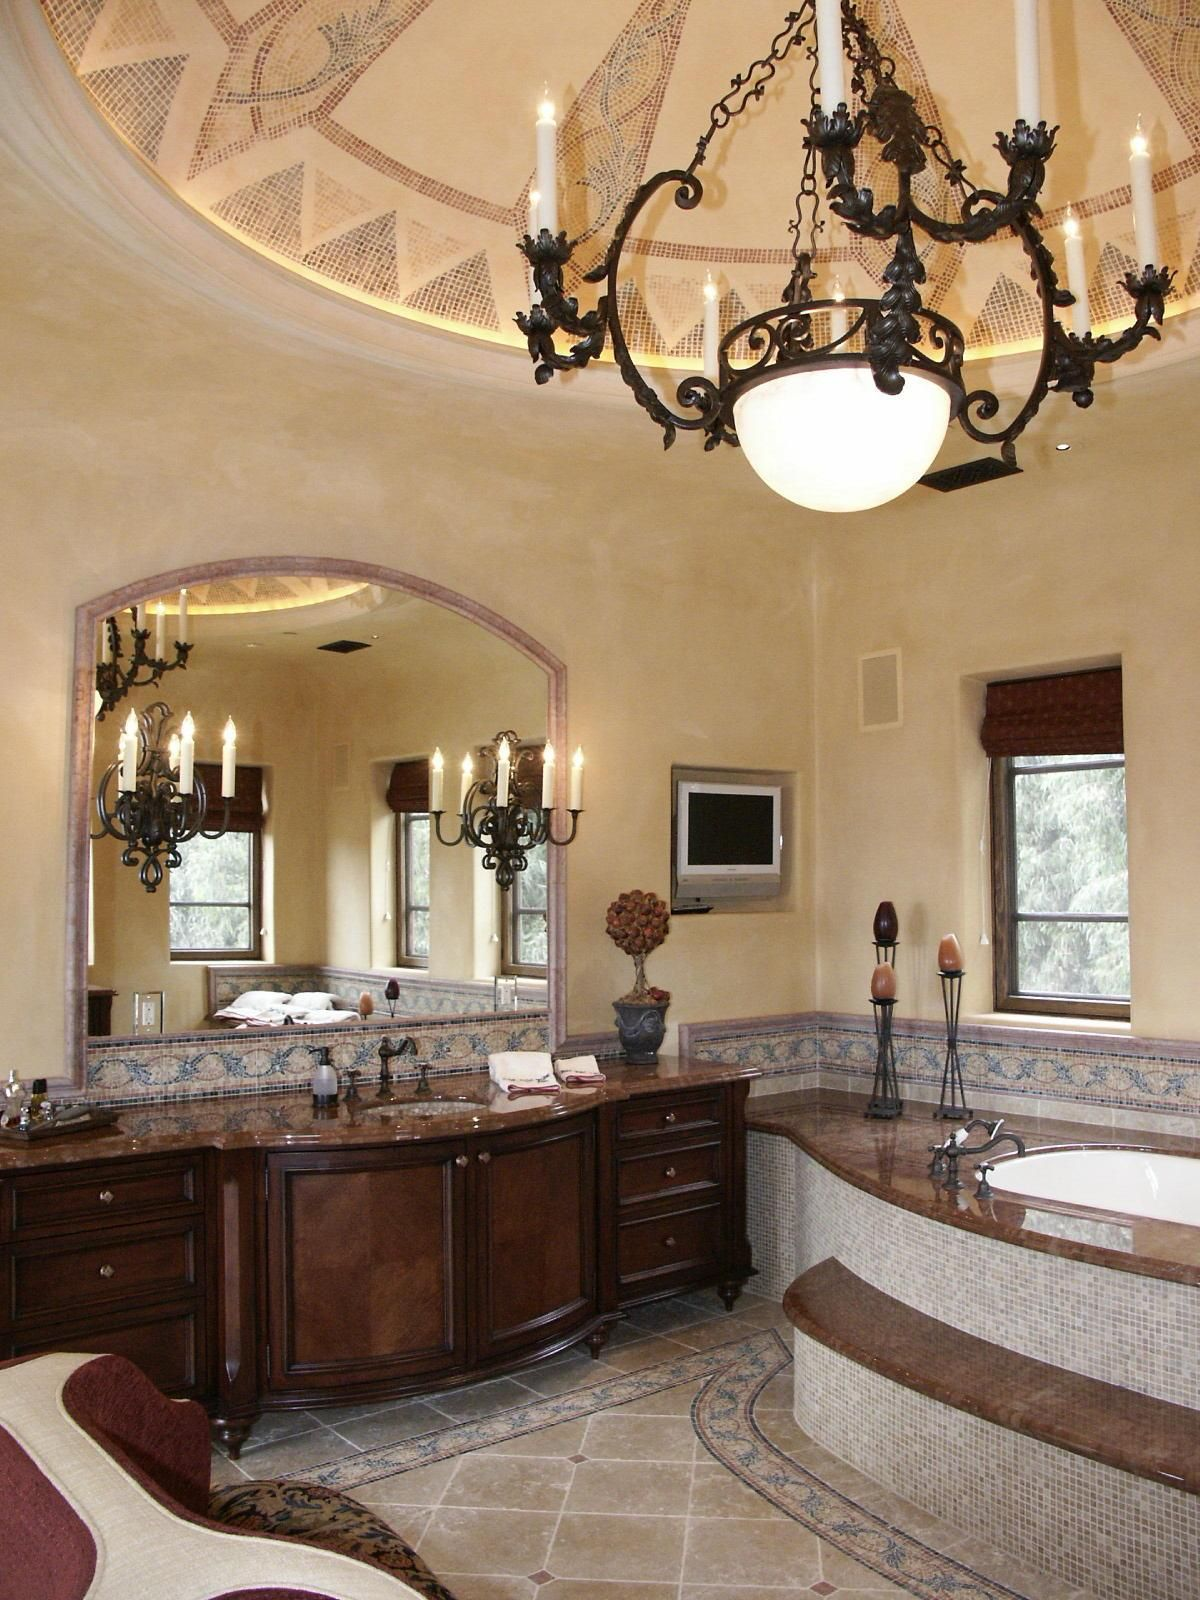 Tuscan Style Bathroom Designs Simple Learn Interior Design Techniques Of The Pros ** Want To Know More Decorating Inspiration